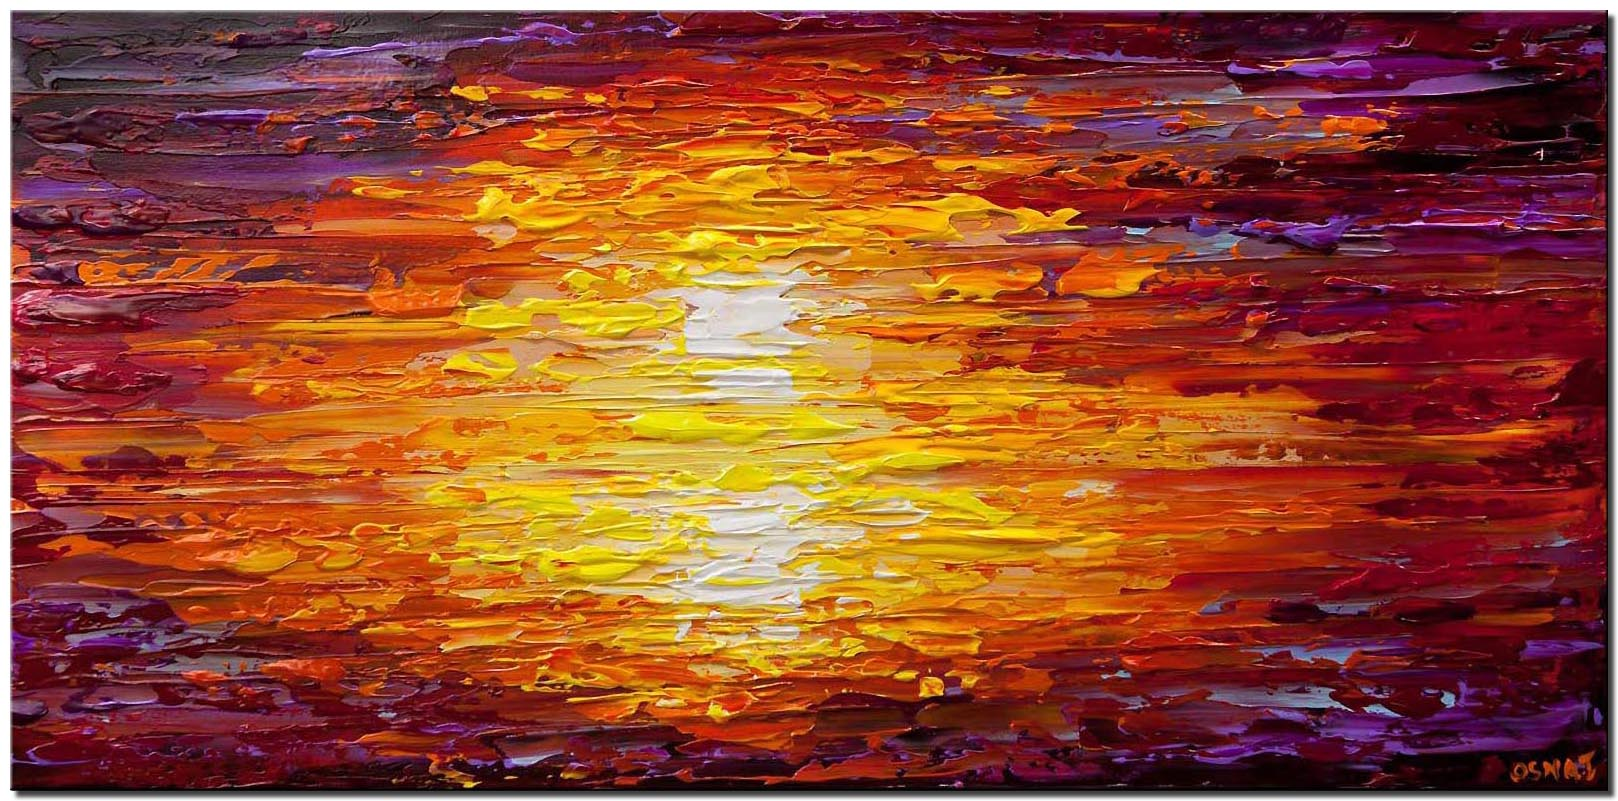 canvas print of textured sunset abstract painting